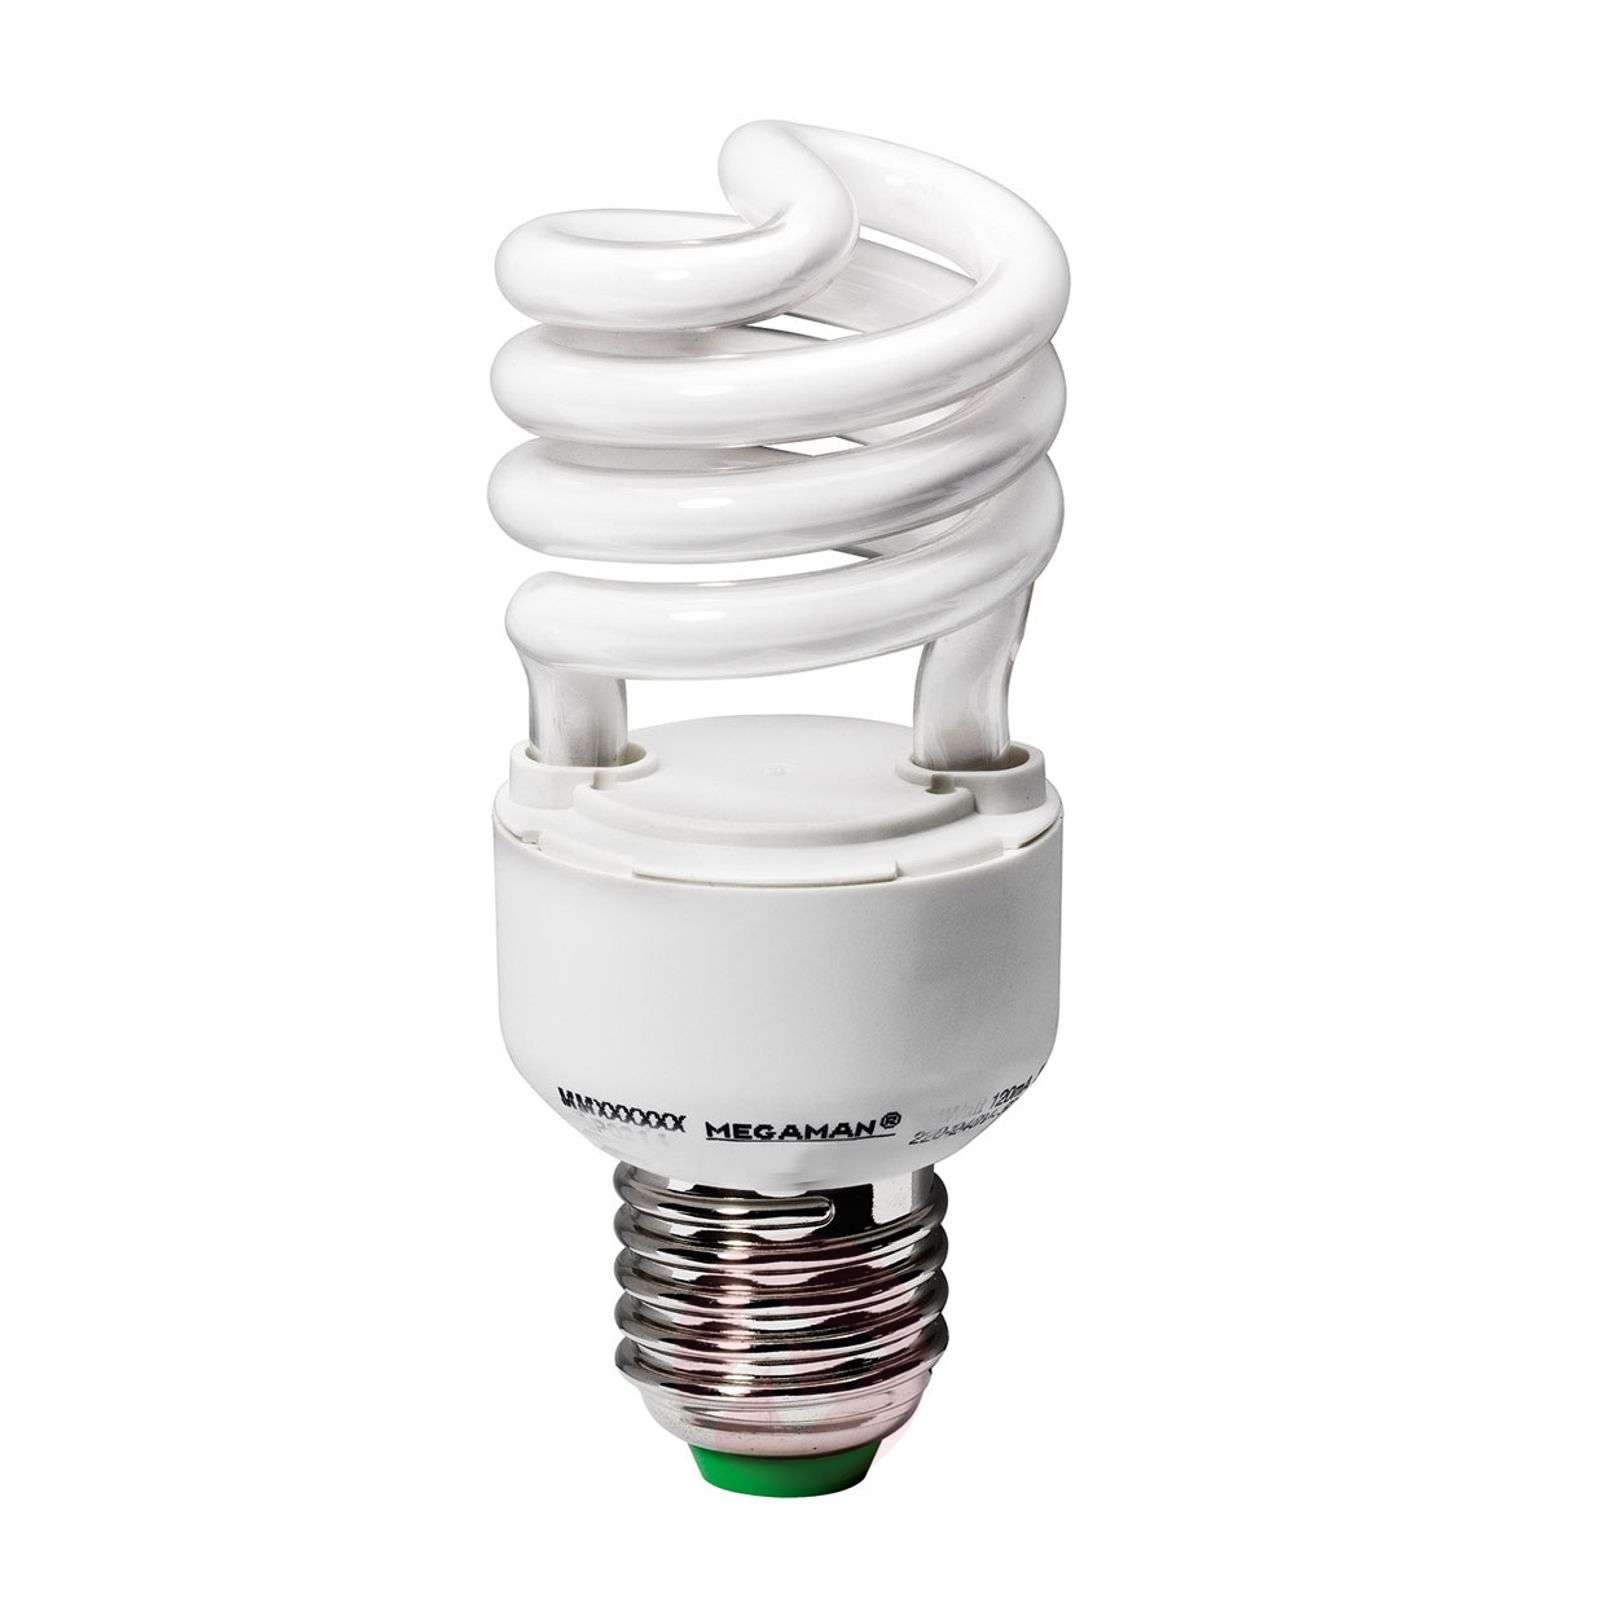 E27 14 W compact fluorescent lamp for plants-6530224-01